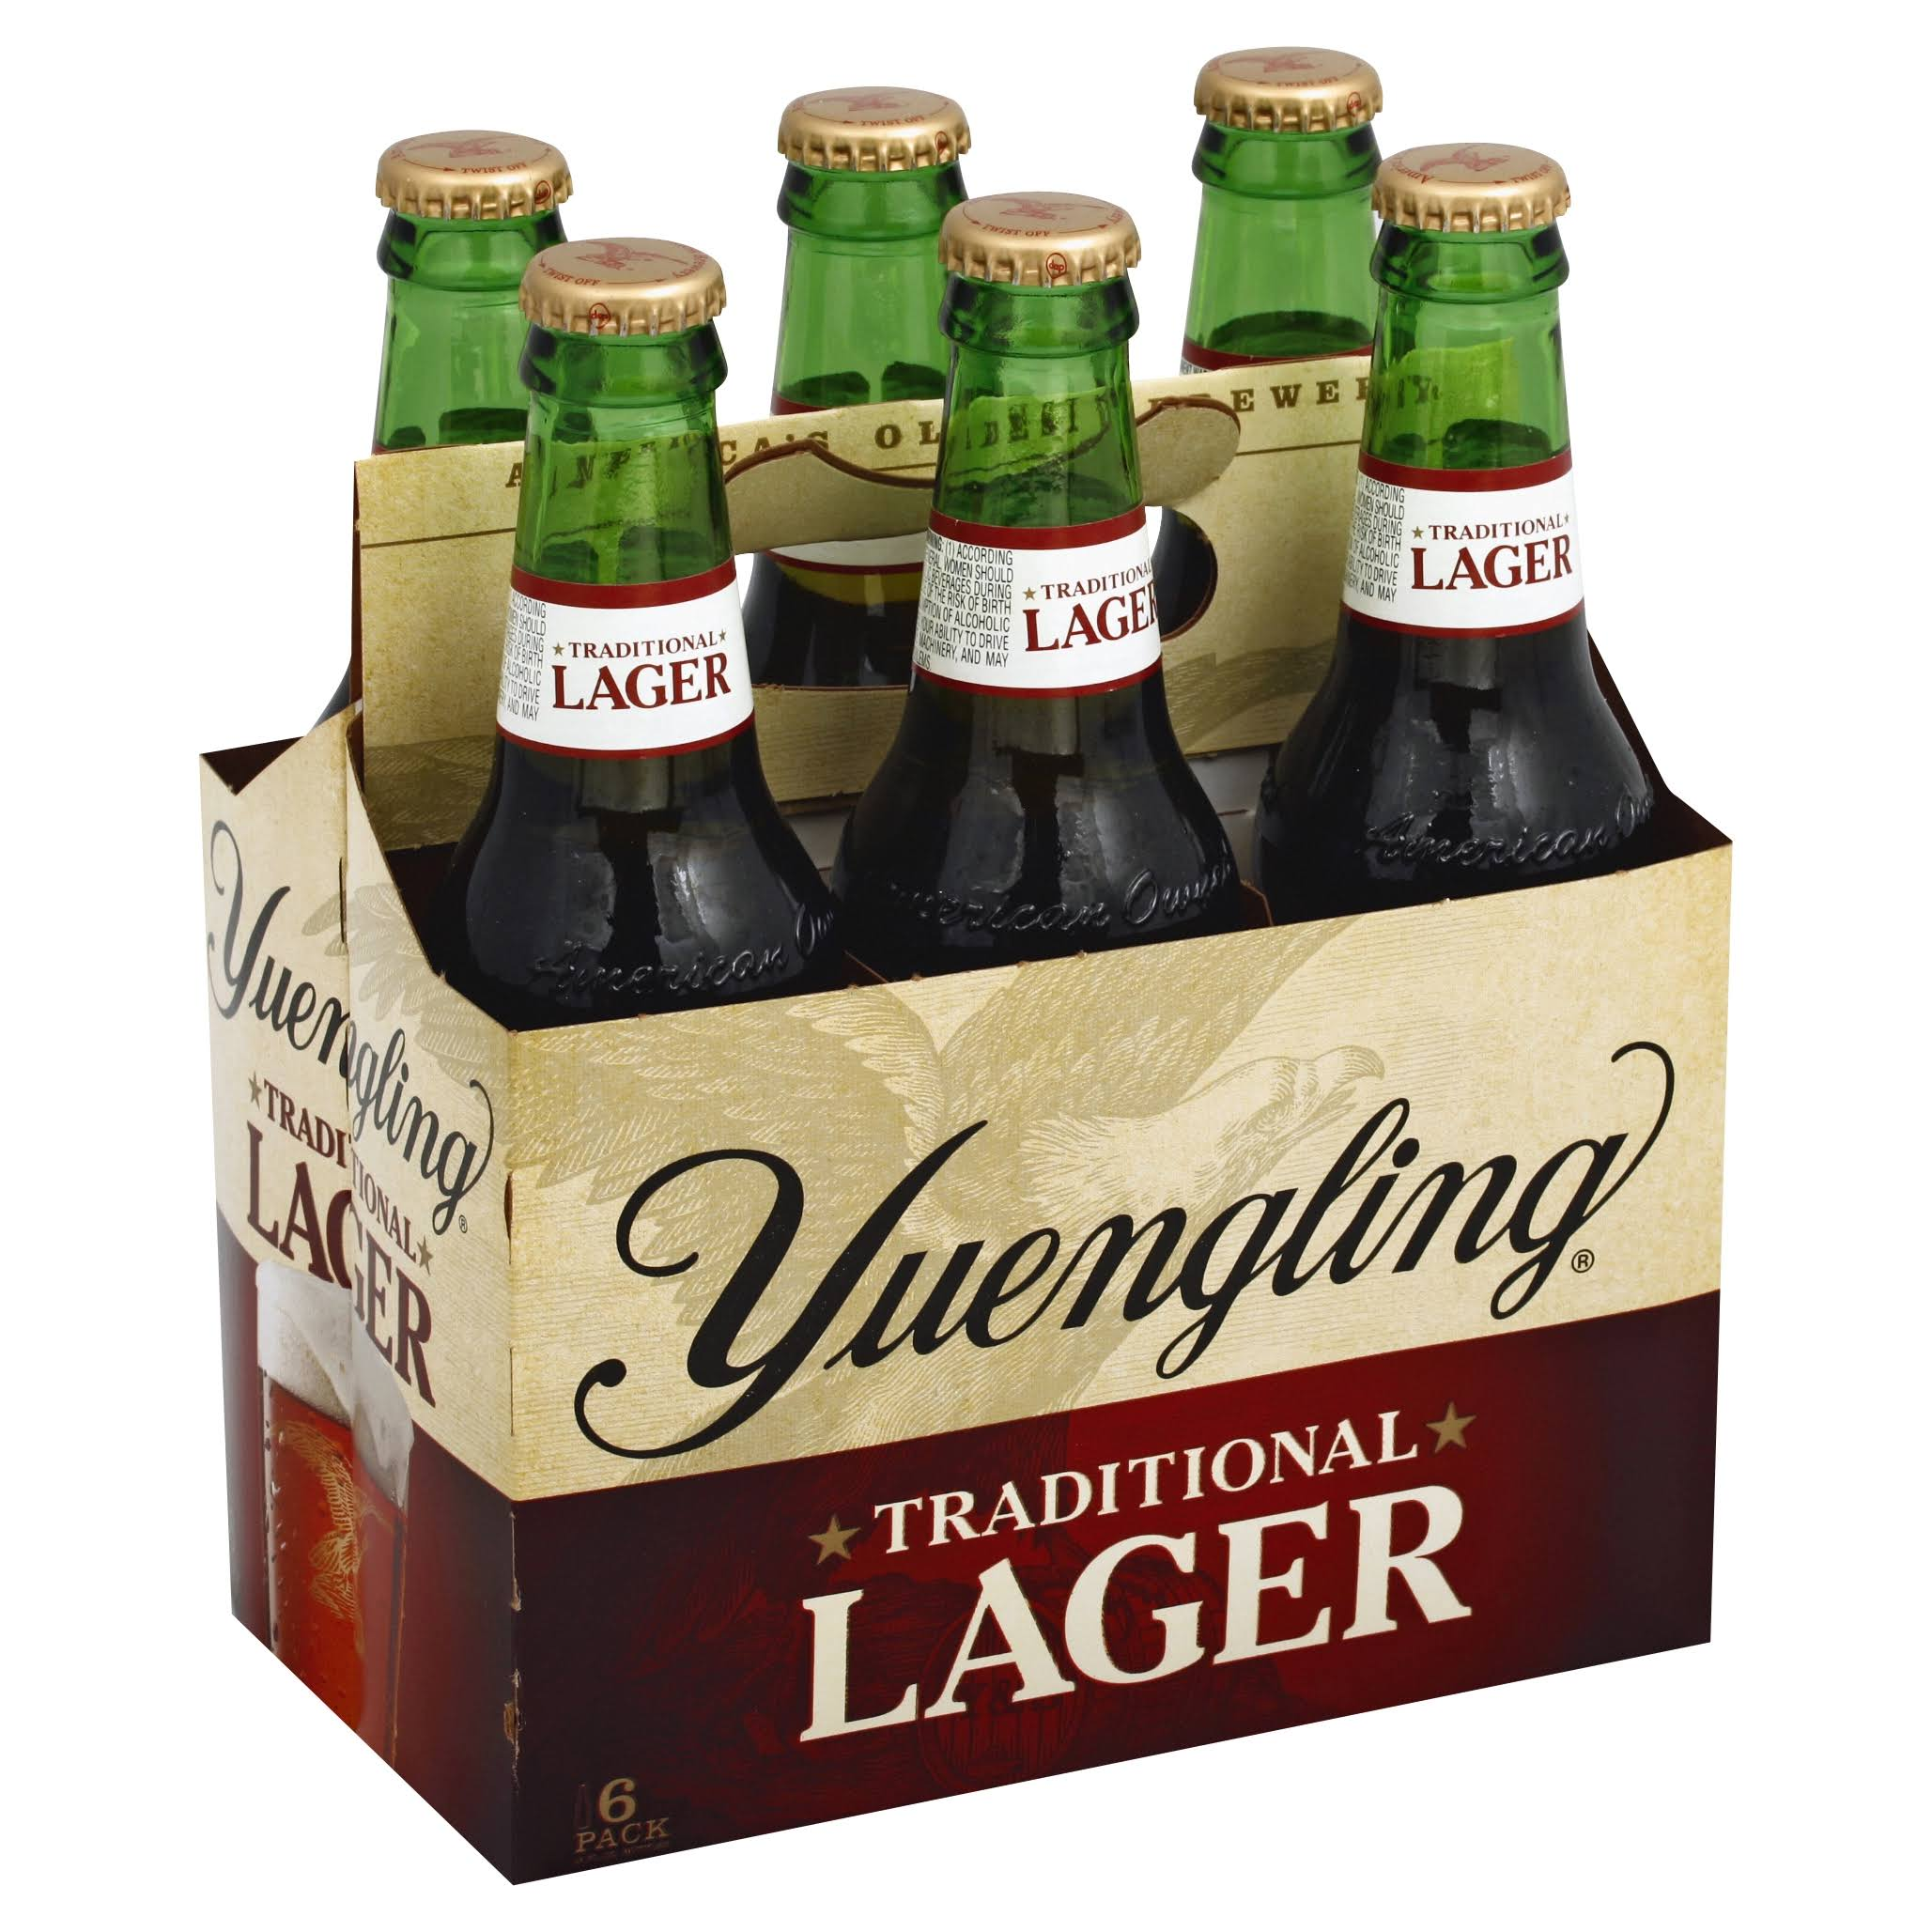 Yuengling Traditional Lager - 6 Pack